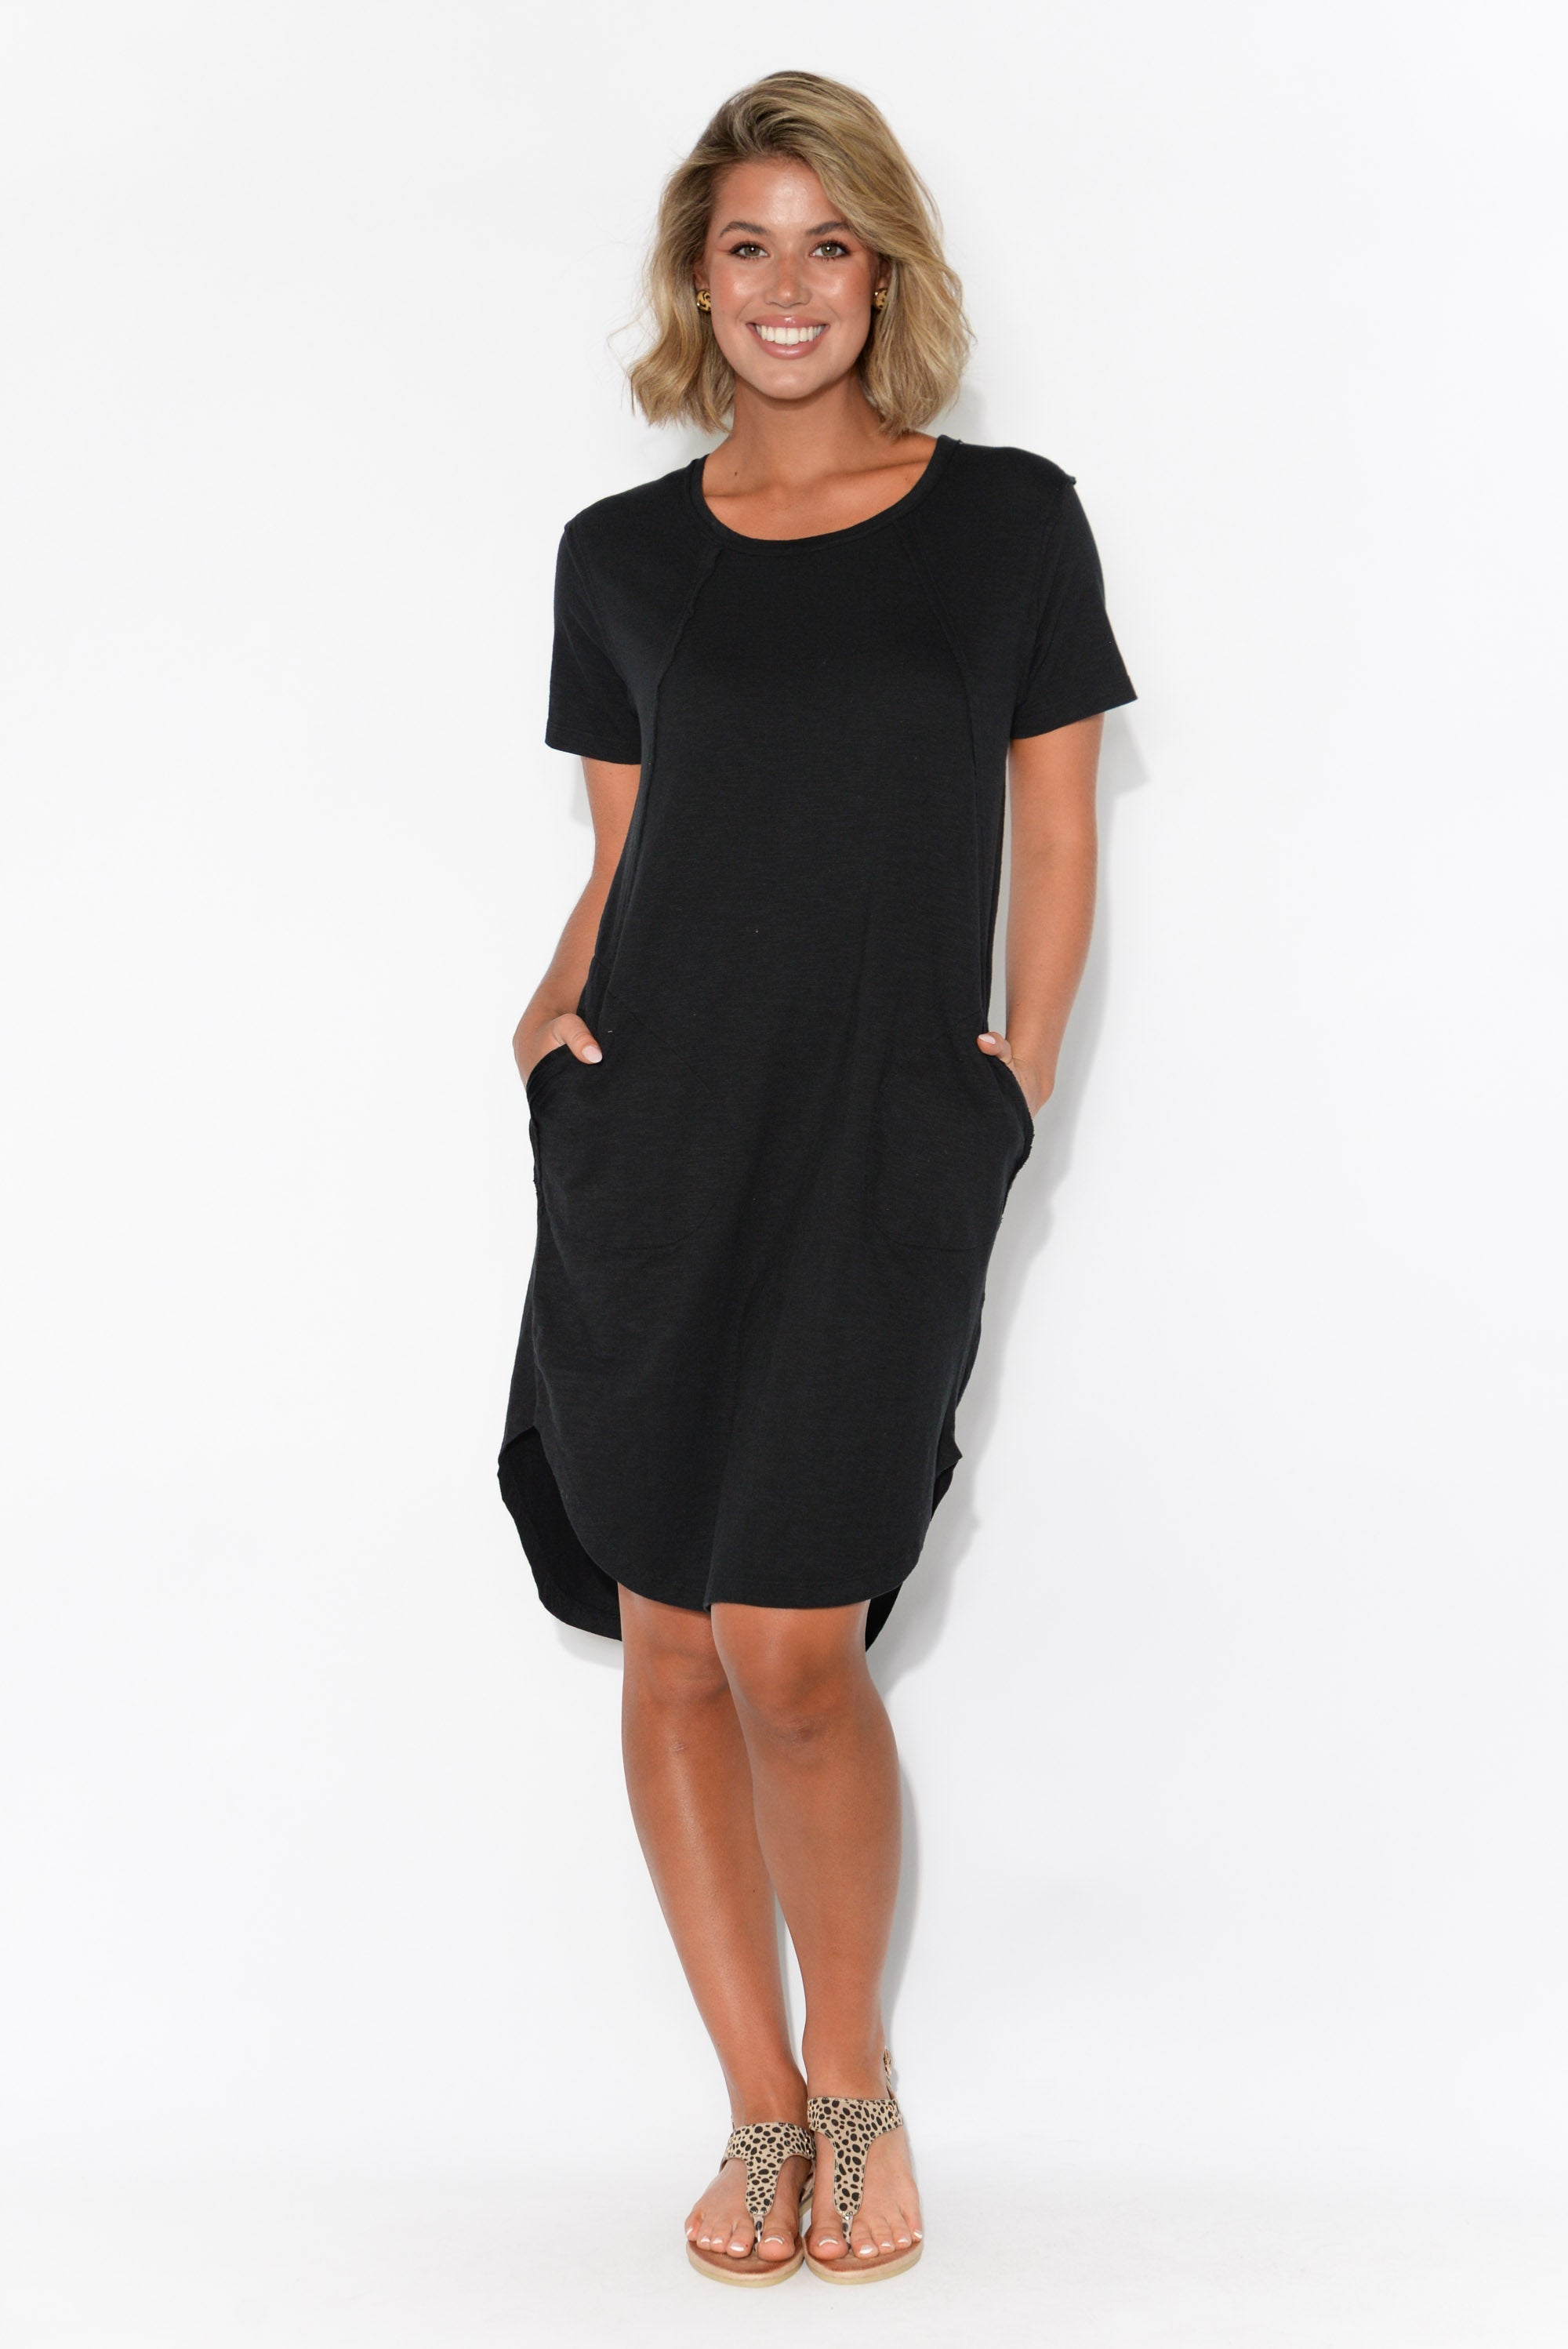 Mckenna Black Cotton Tee Dress